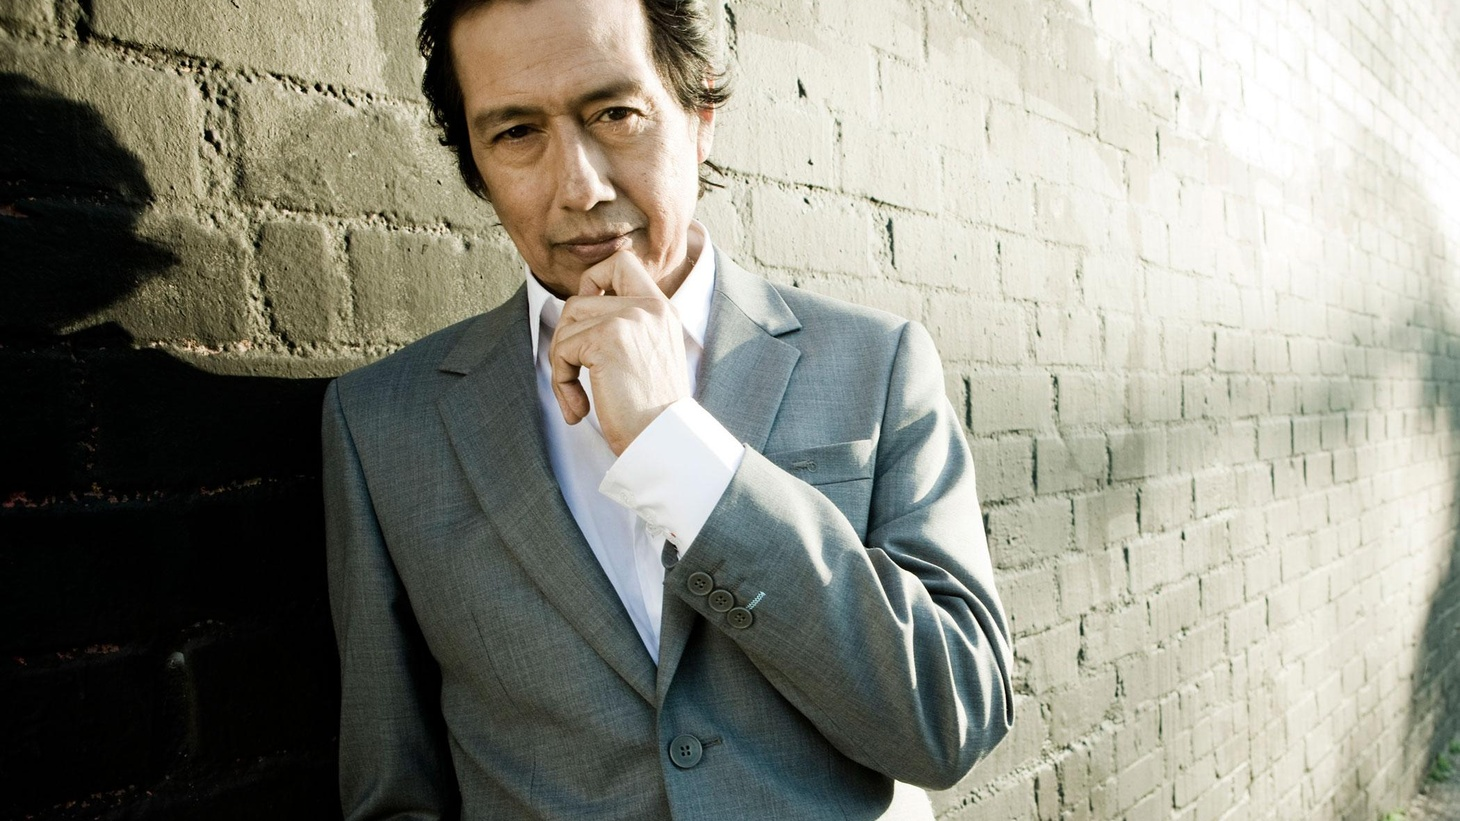 """Alejandro Escovedo is a hometown hero in his adopted city of Austin where passersby knowingly nod their heads to greet him. On his tenth solo release, he's backed by his band, The Sensitive Boys, with music legend Tony Visconti on board as producer. Today's Top Tune is """"Tula,"""" from the CD Street Songs of Love."""